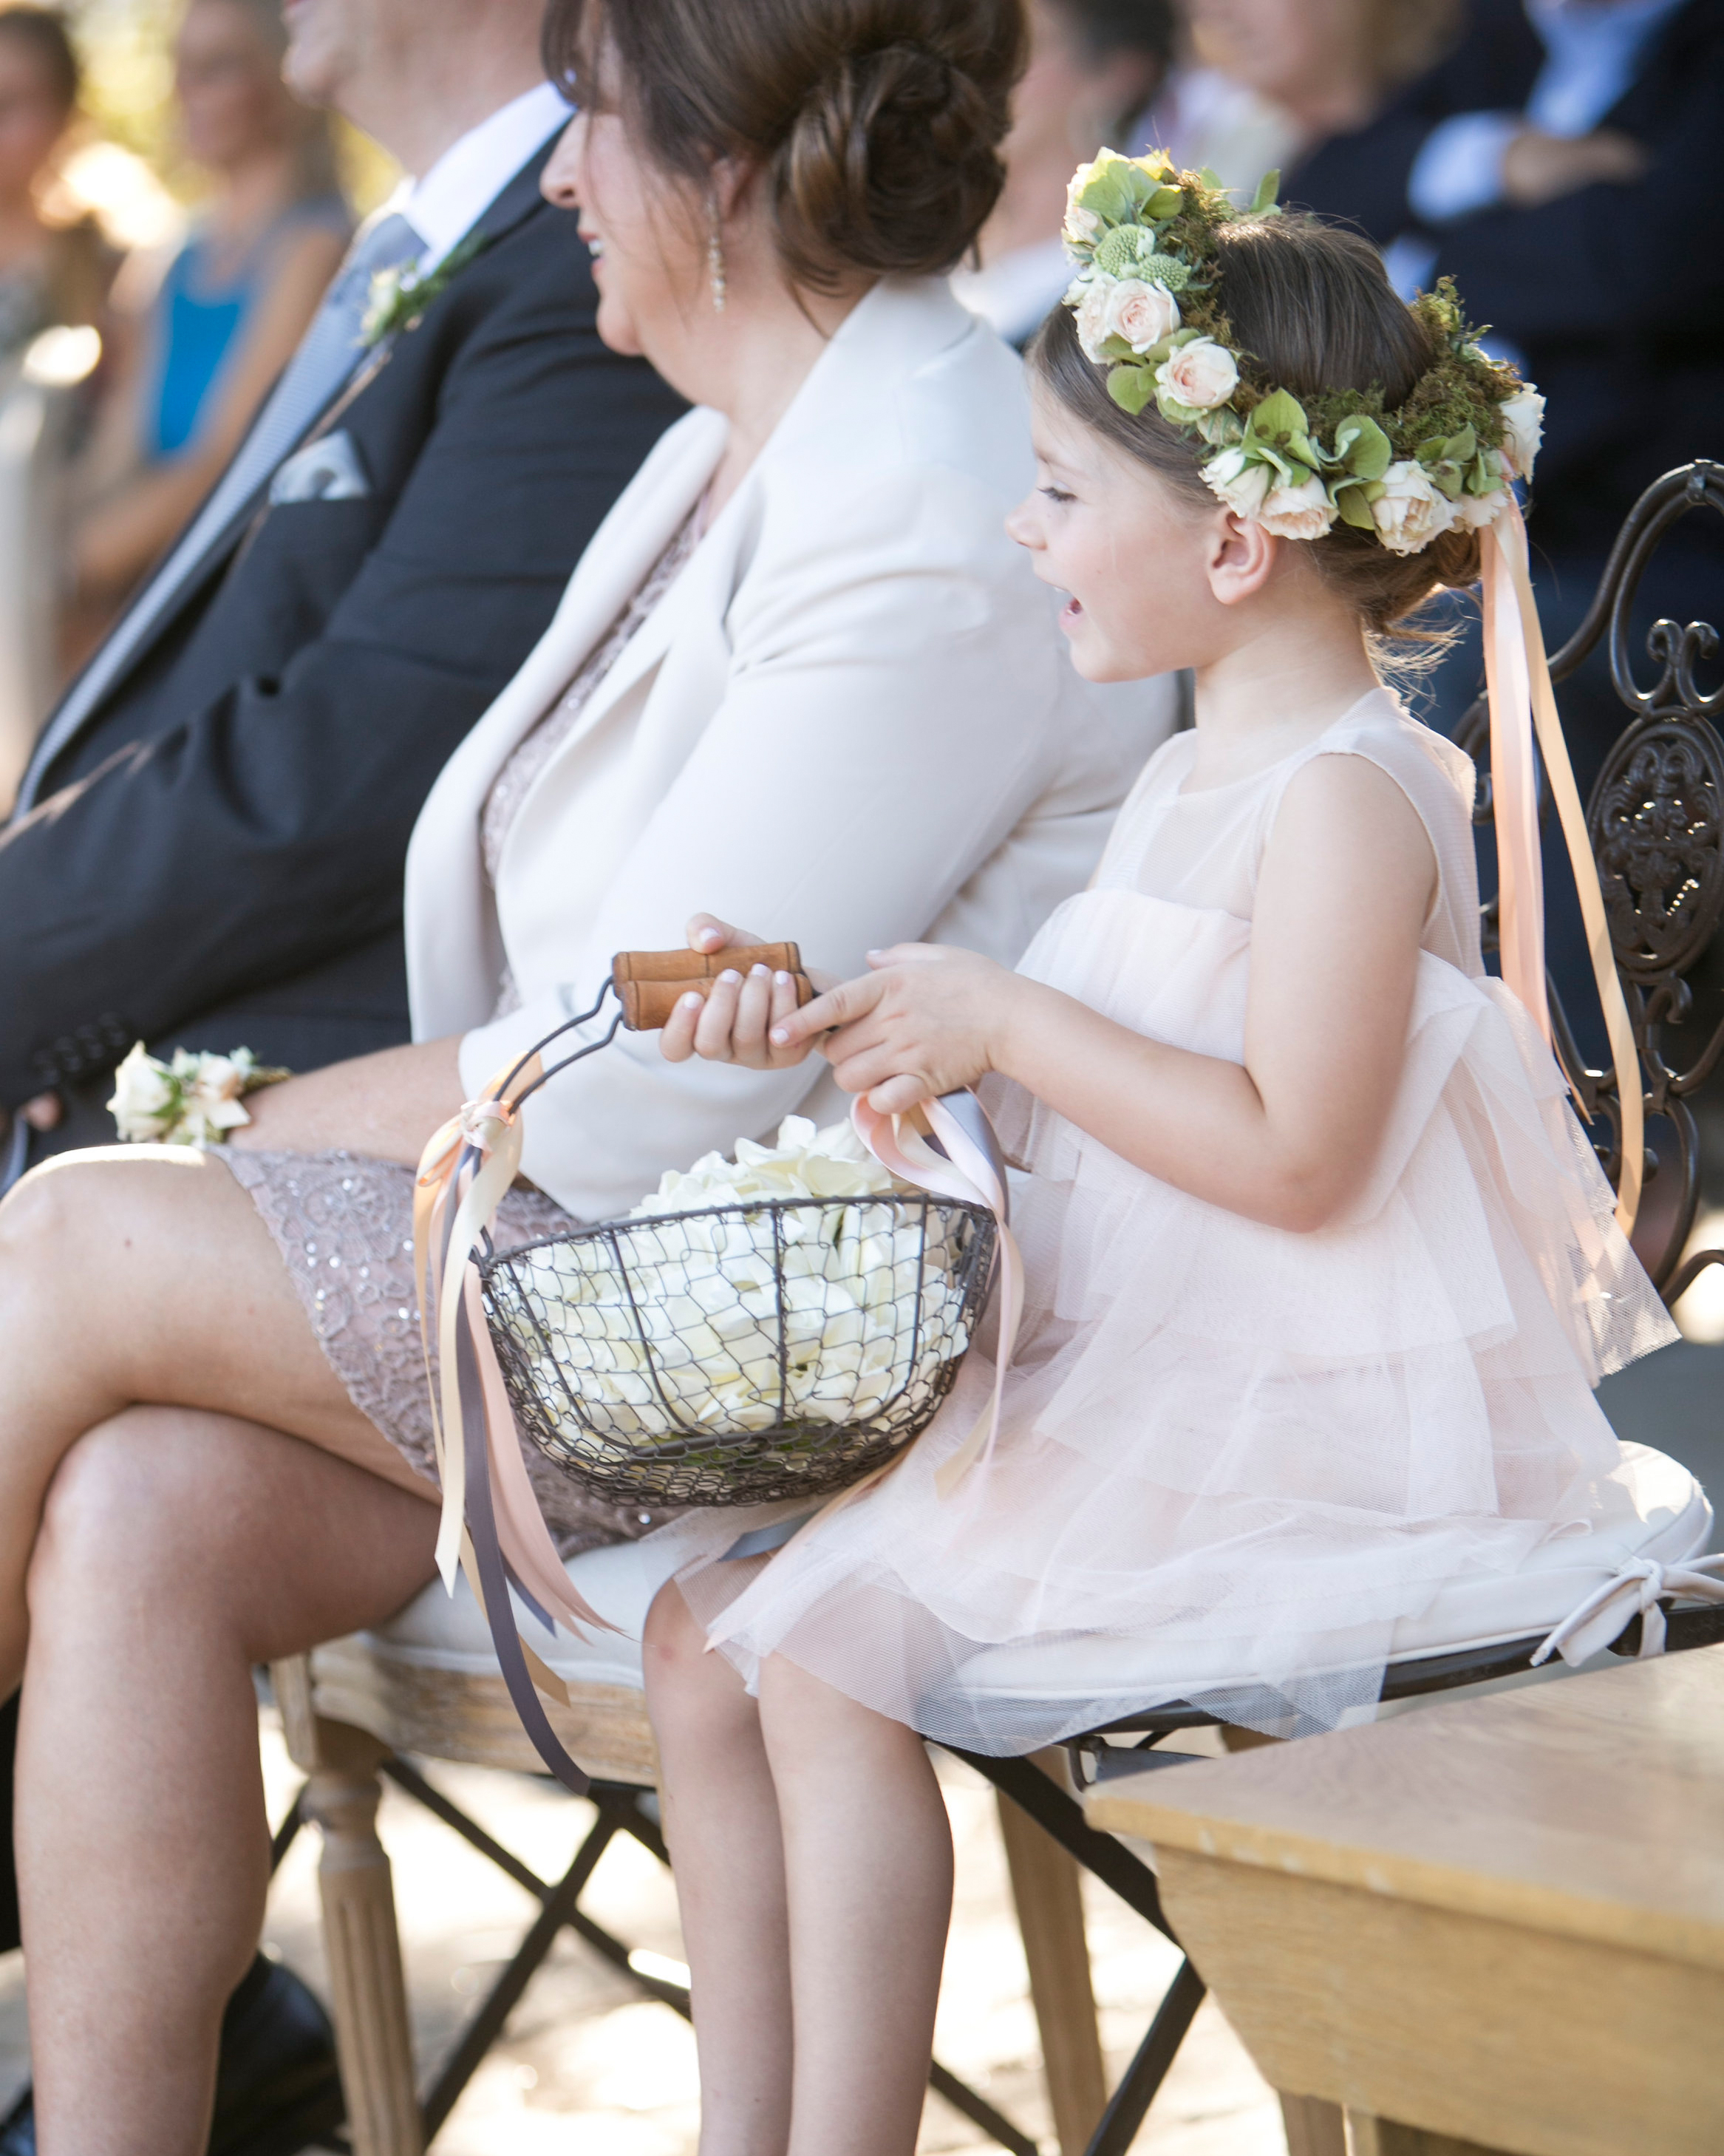 briana-adam-wedding-flowergirl-0789-s112471-1215.jpg